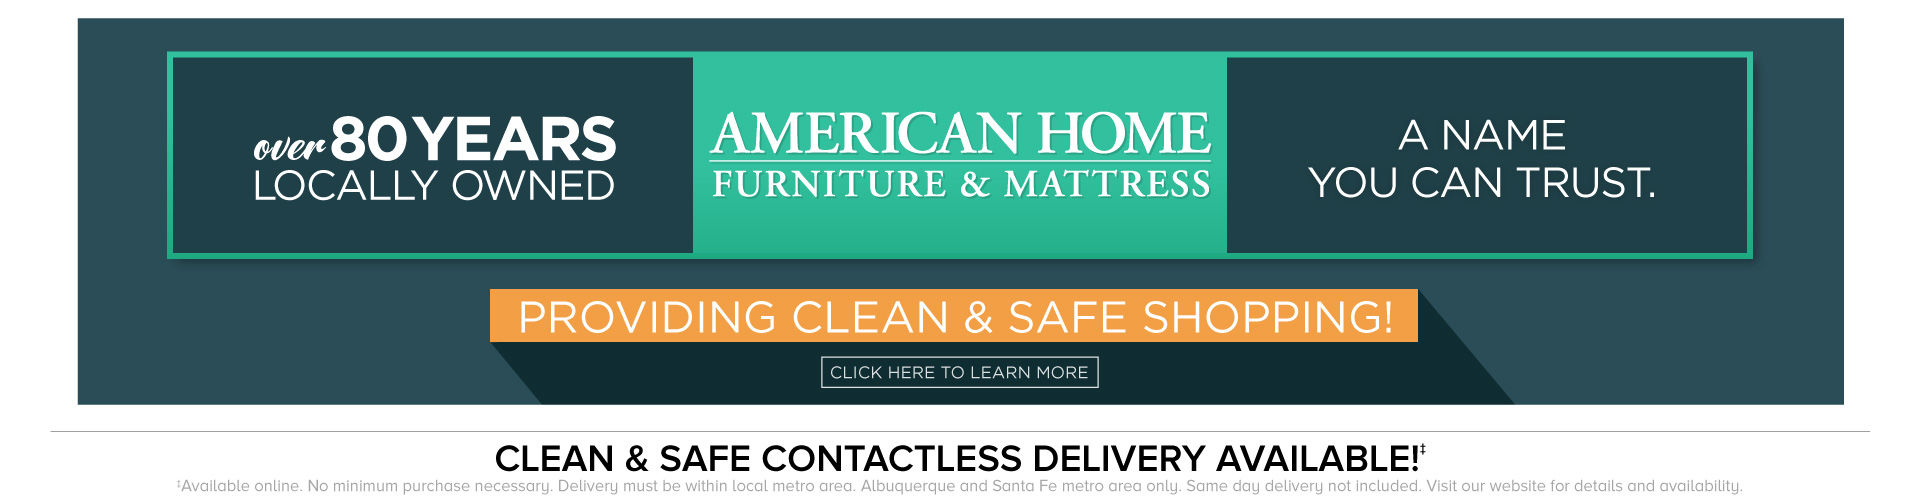 American Home A Name You Can Trust